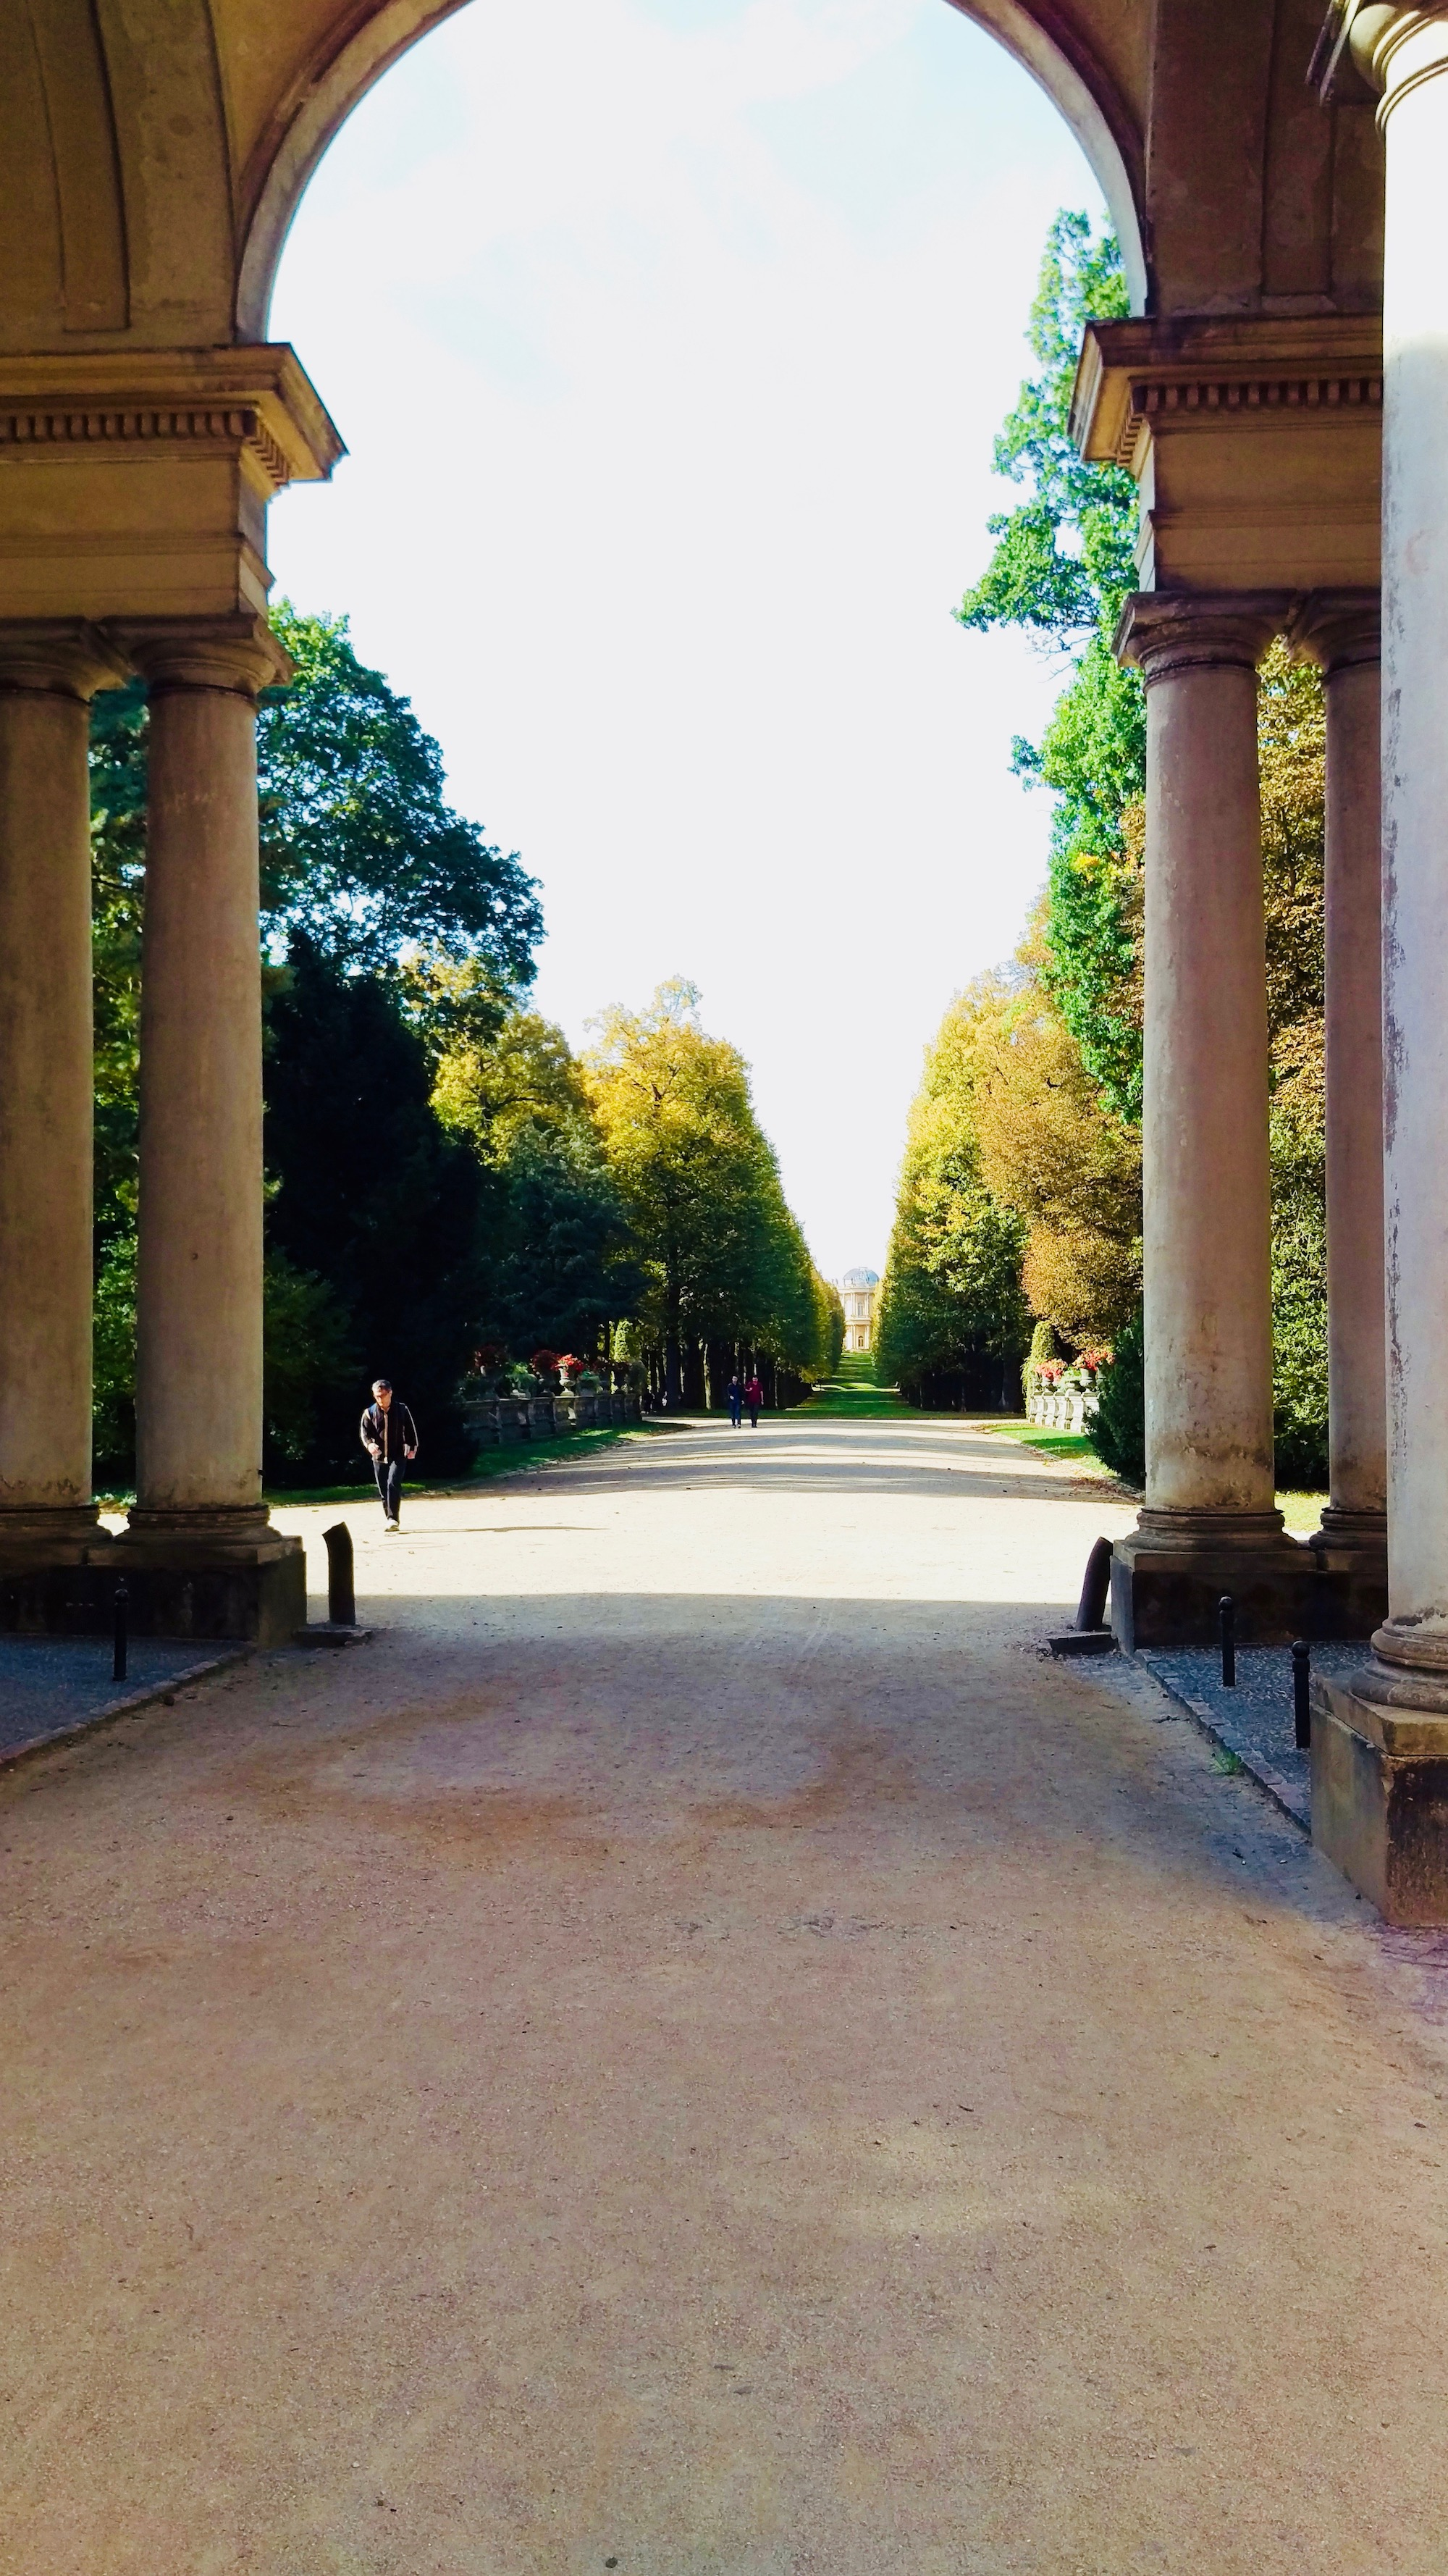 An alley full of trees leads to Belvedere on the Klausberg.